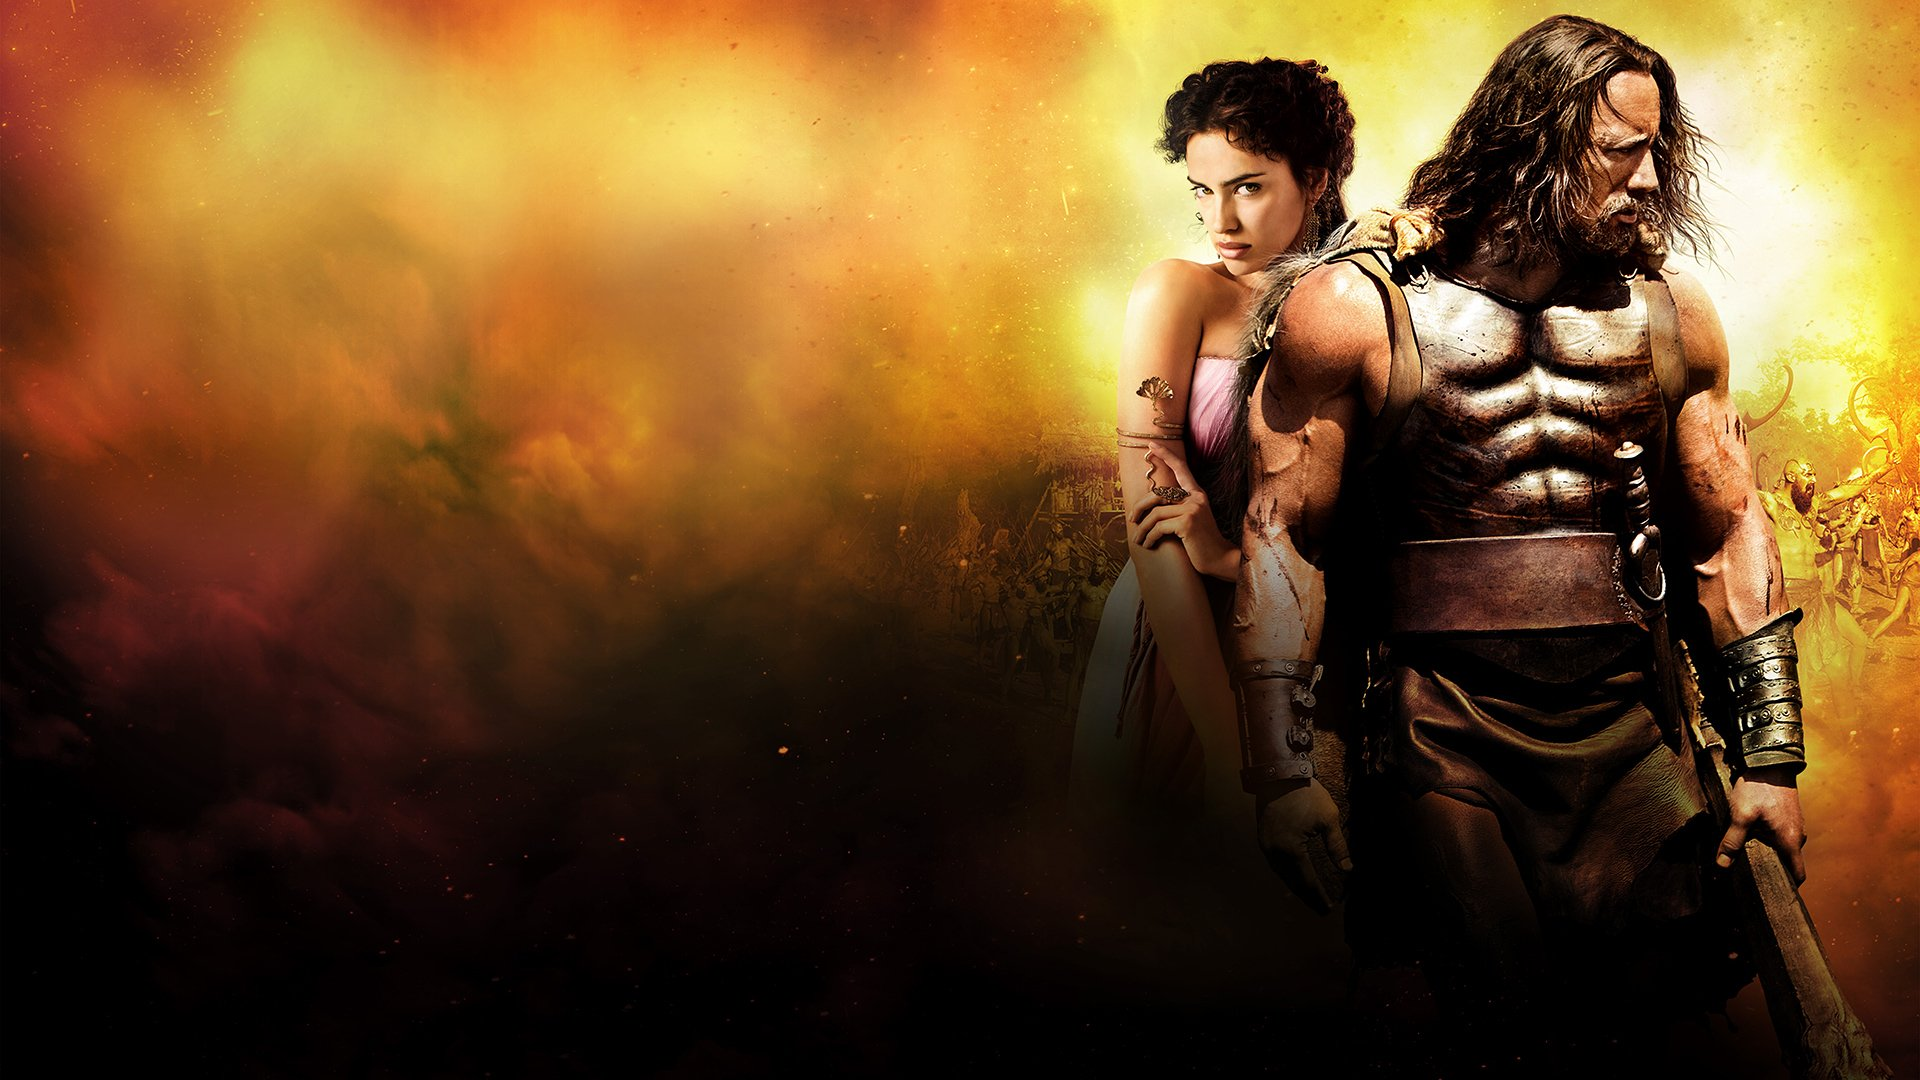 32 Hercules (2014) HD Wallpapers   Background Images - Wallpaper Abyss